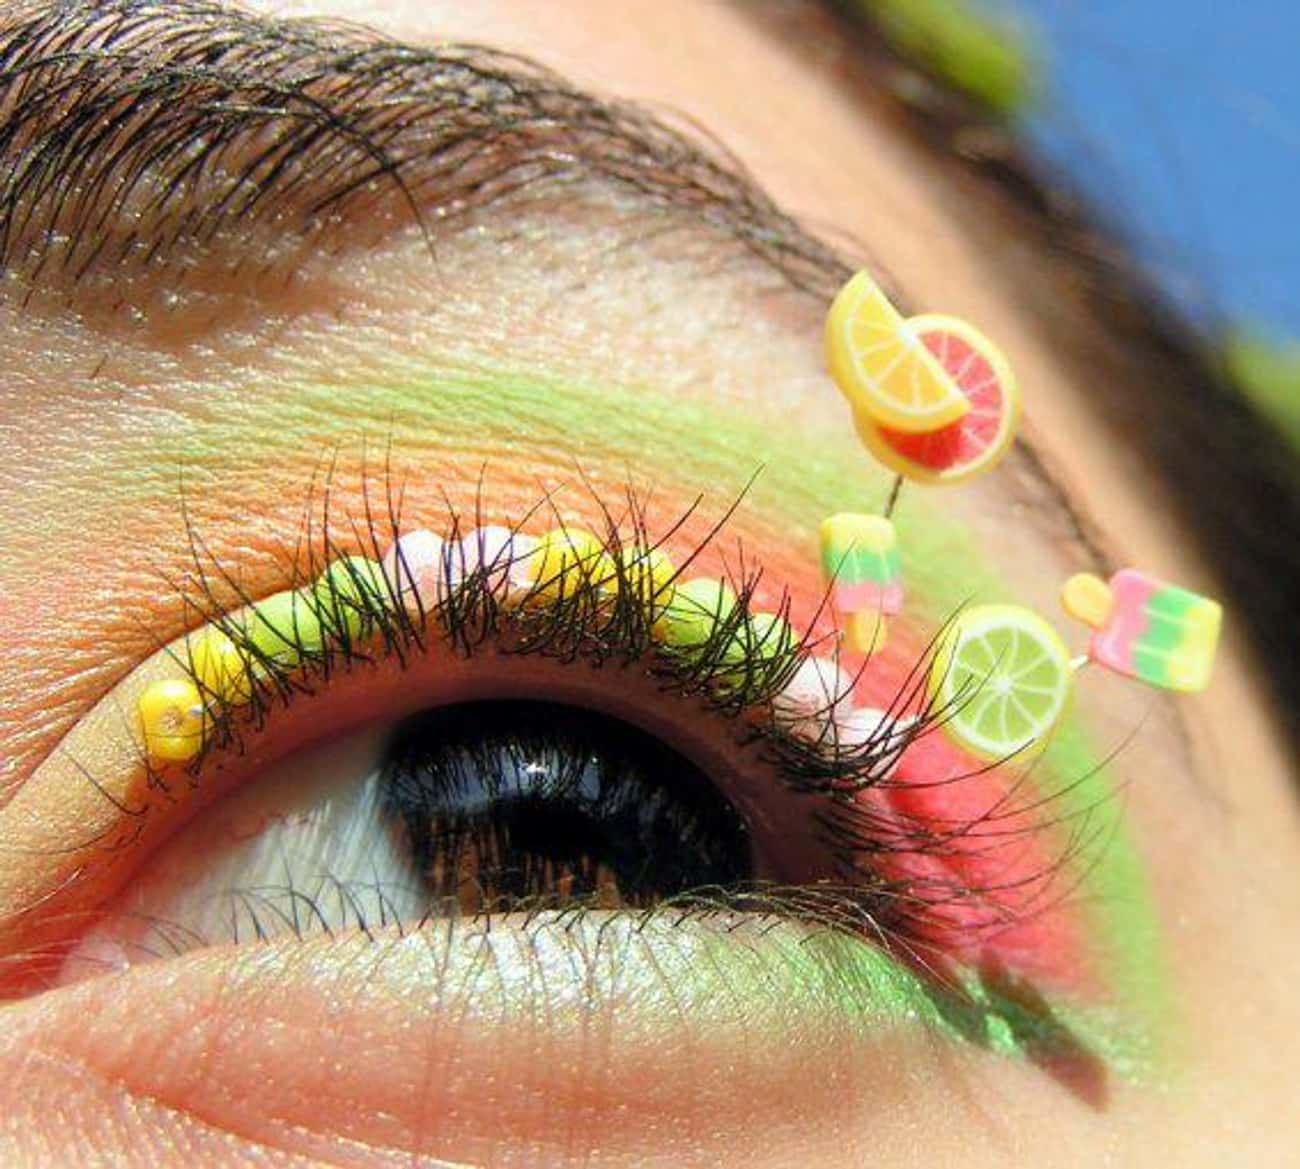 Bring In Summer With a Little  is listed (or ranked) 4 on the list People Are Gluing Objects To Their Eyelids For The Perfect Instagram Photo